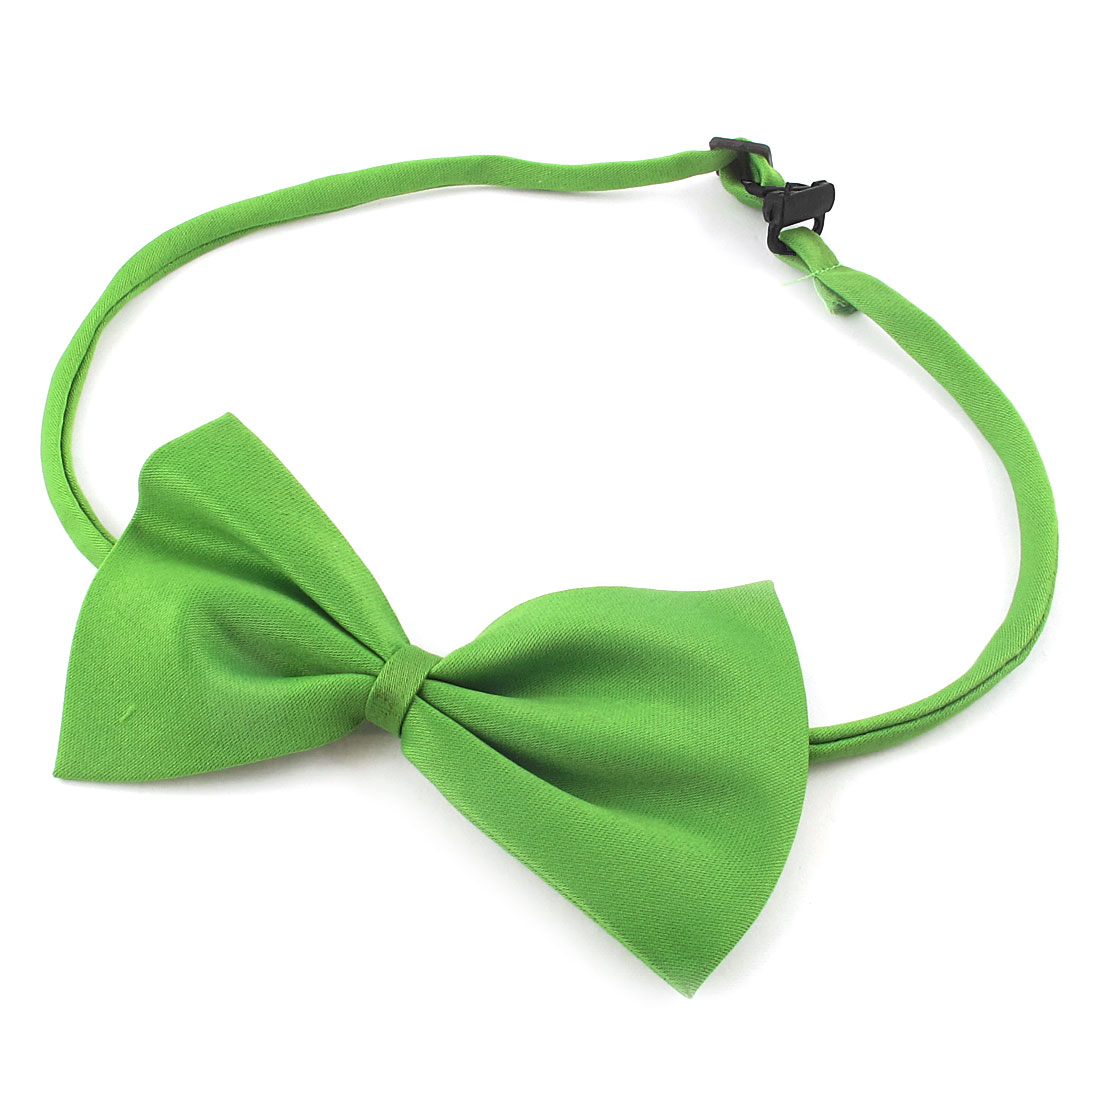 2pcs Adjustable Band Pet Dog Doggy Bowtie Necktie Collar Green